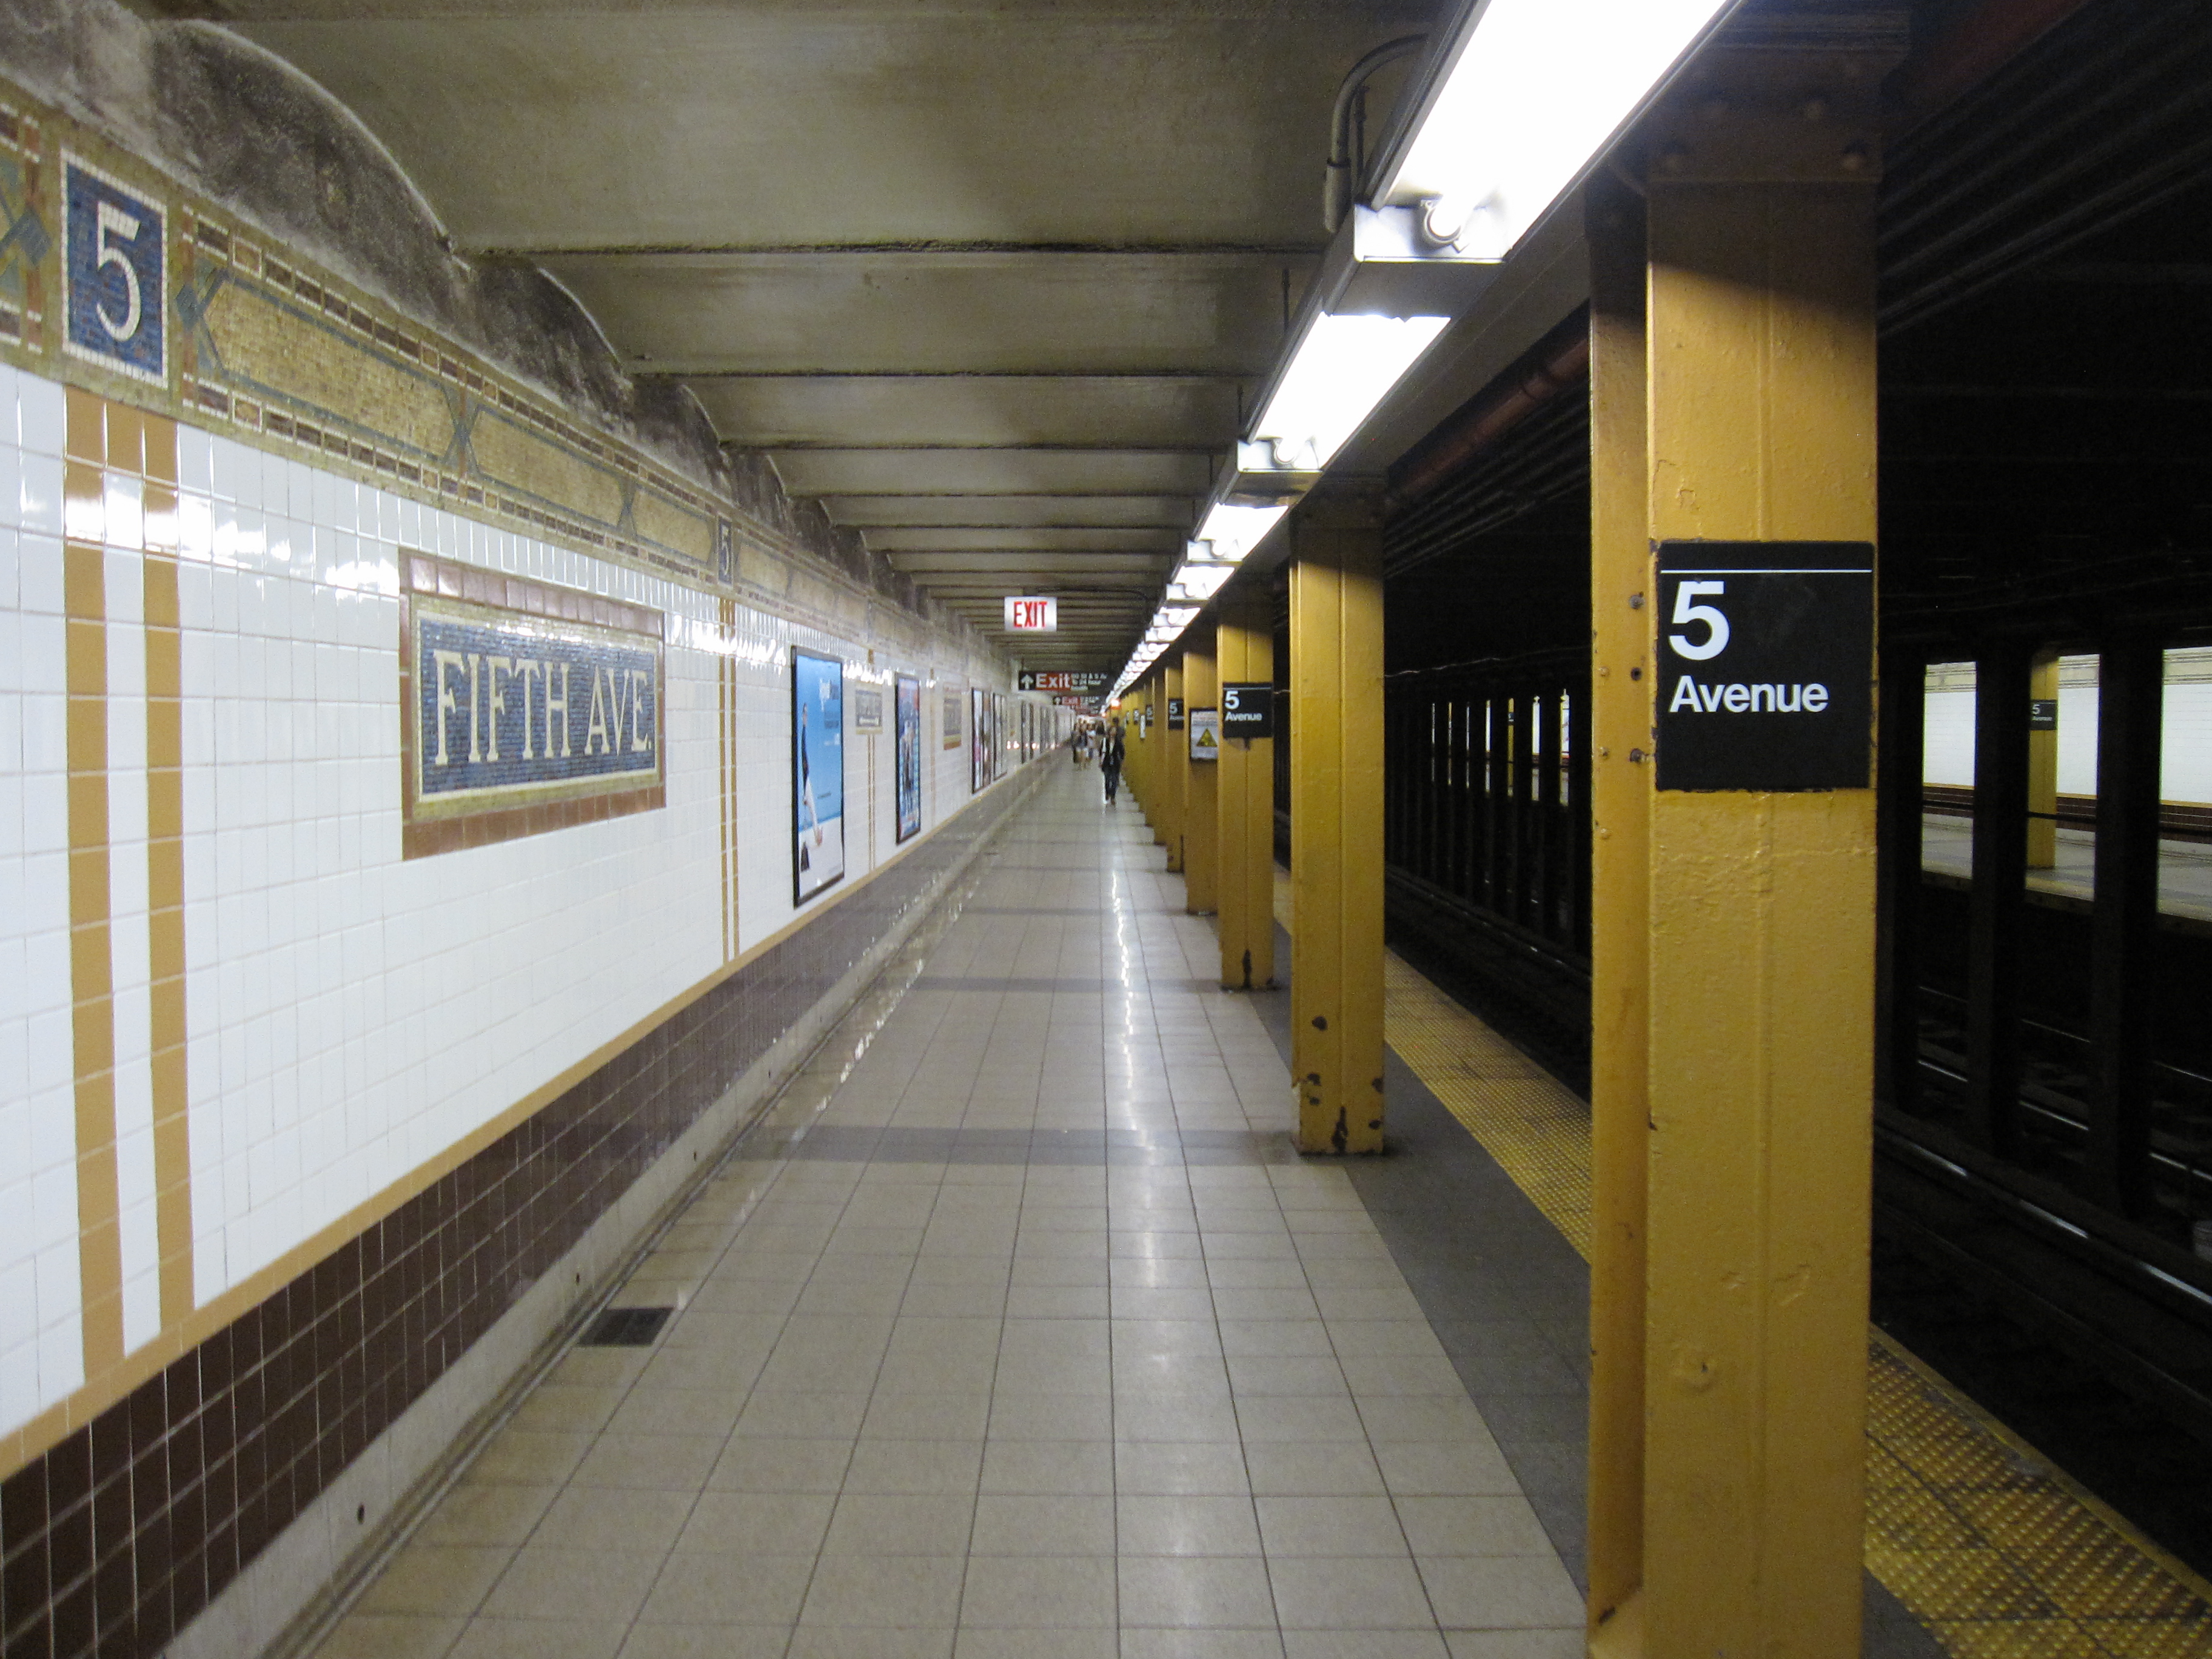 Fifth Avenue 59th Street Station